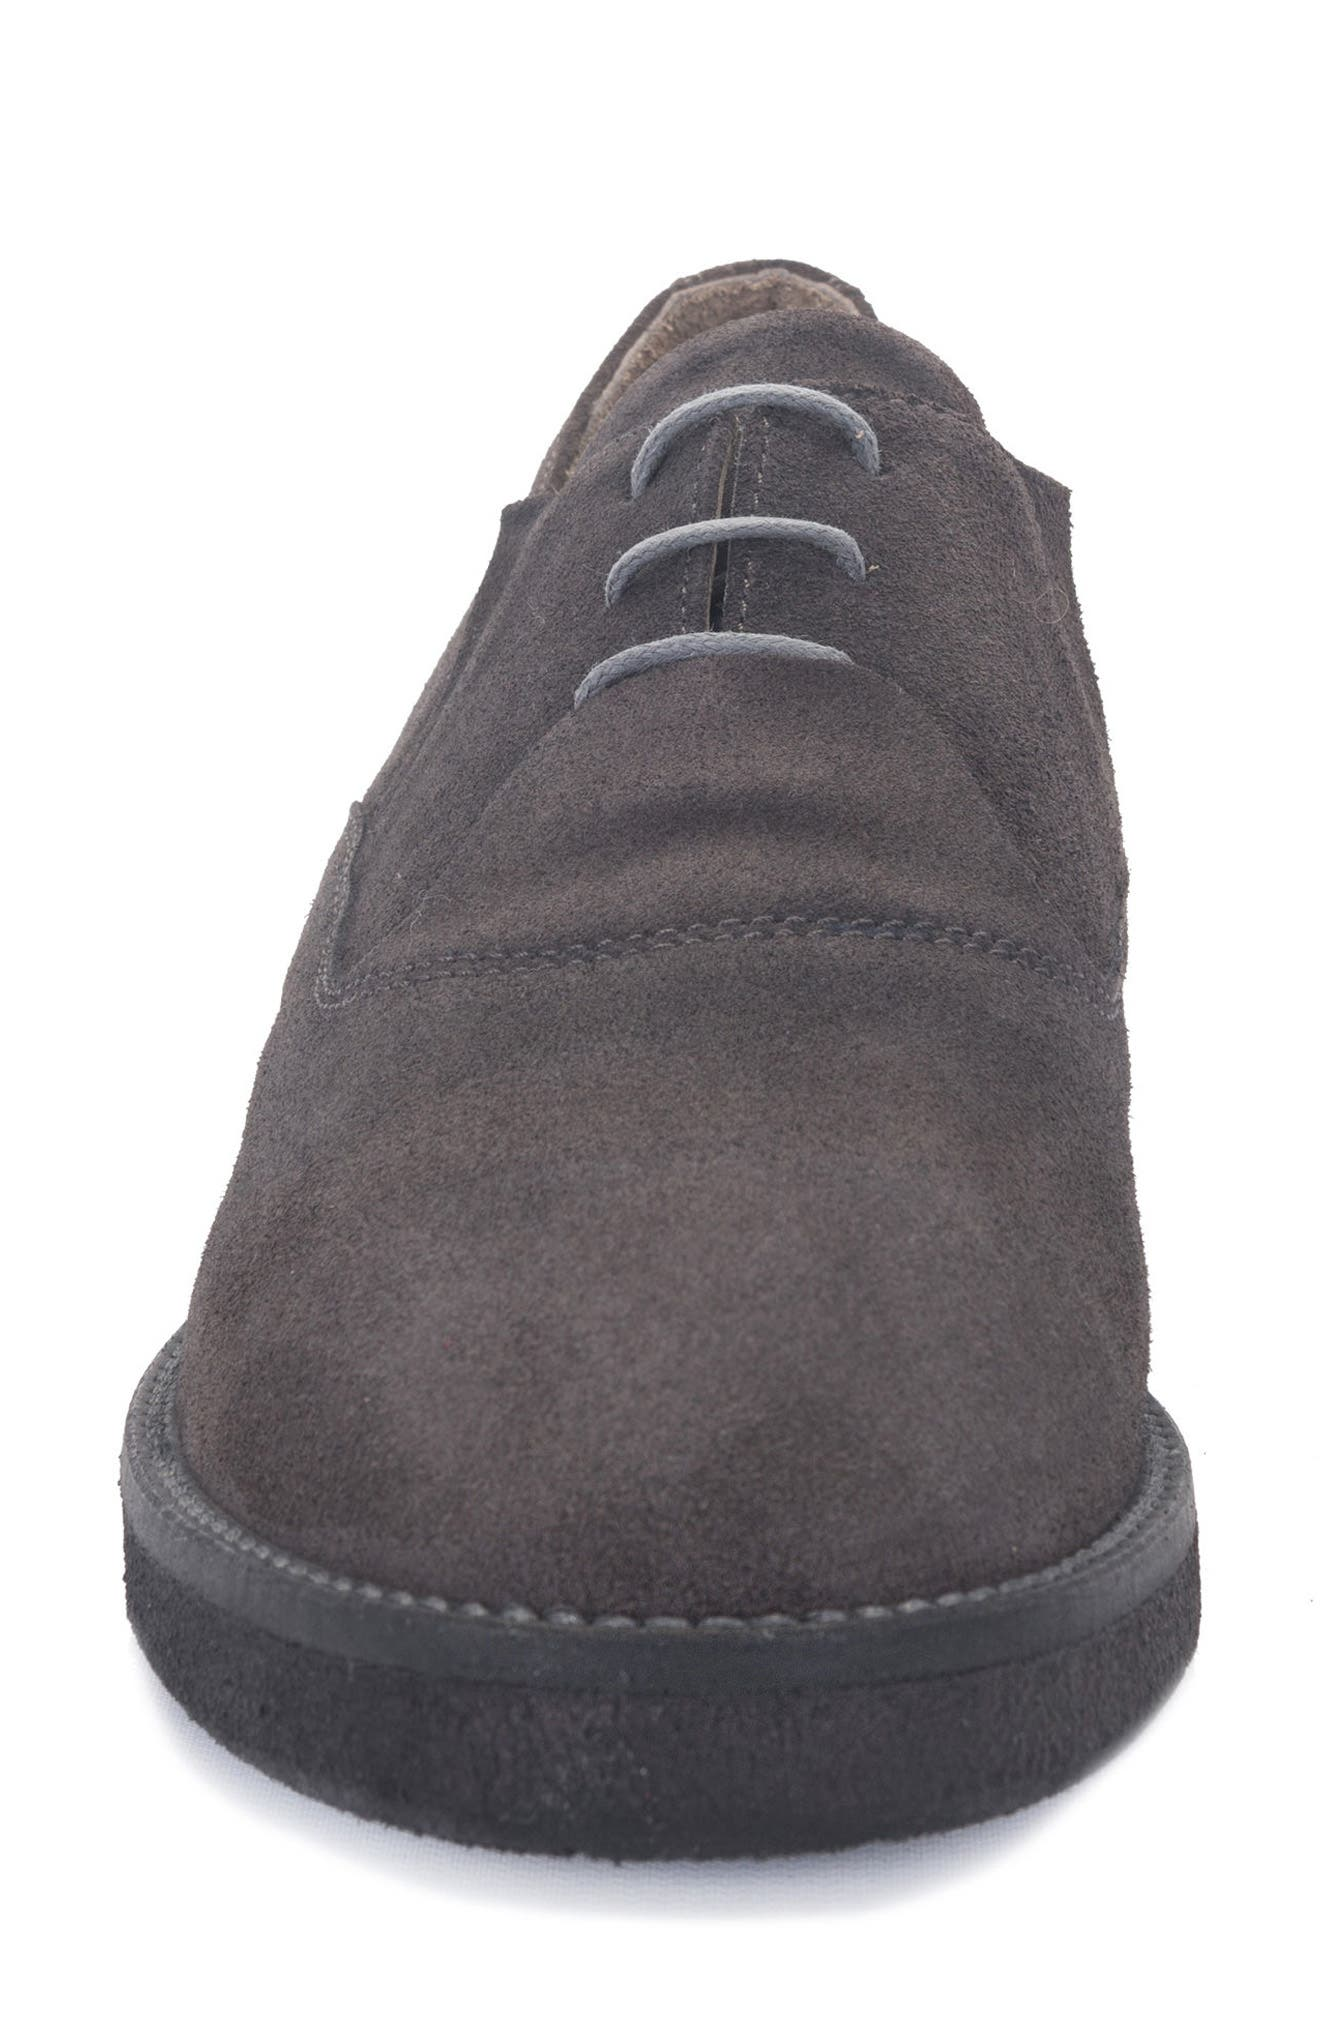 Molinella Water-Resistant Oxford,                             Alternate thumbnail 4, color,                             002